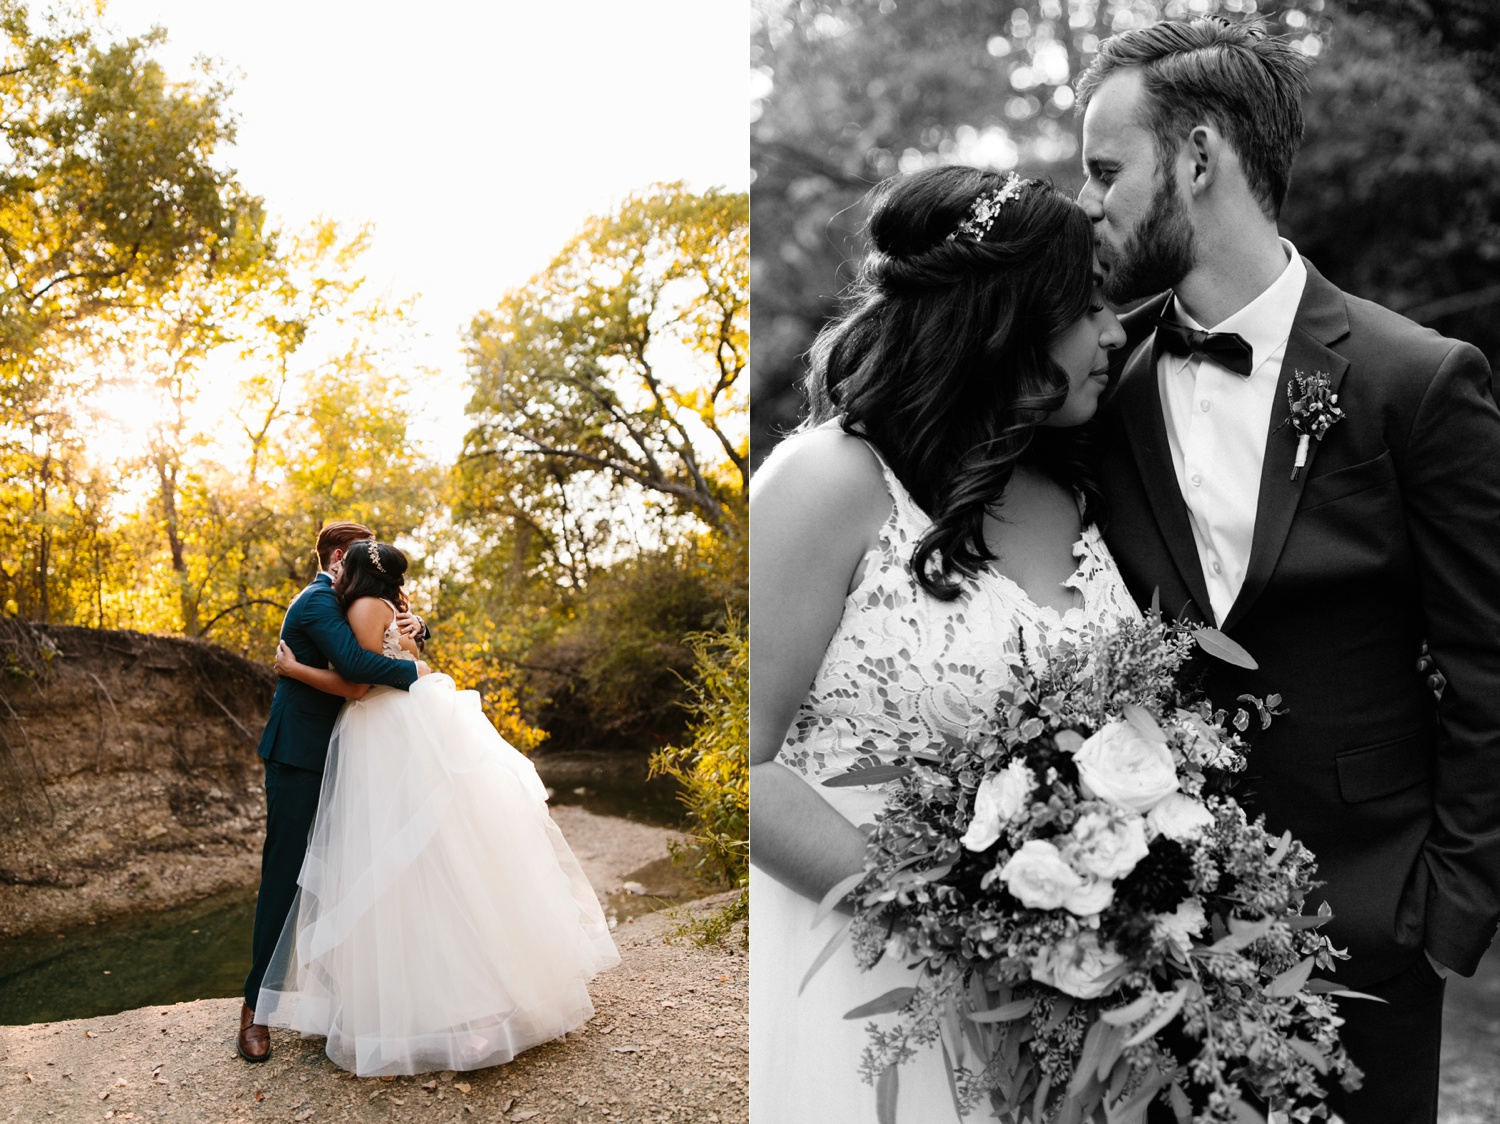 Grant + Lysette | a vibrant, deep burgundy and navy, and mixed metals wedding at Hidden Pines Chapel by North Texas Wedding Photographer Rachel Meagan Photography 207